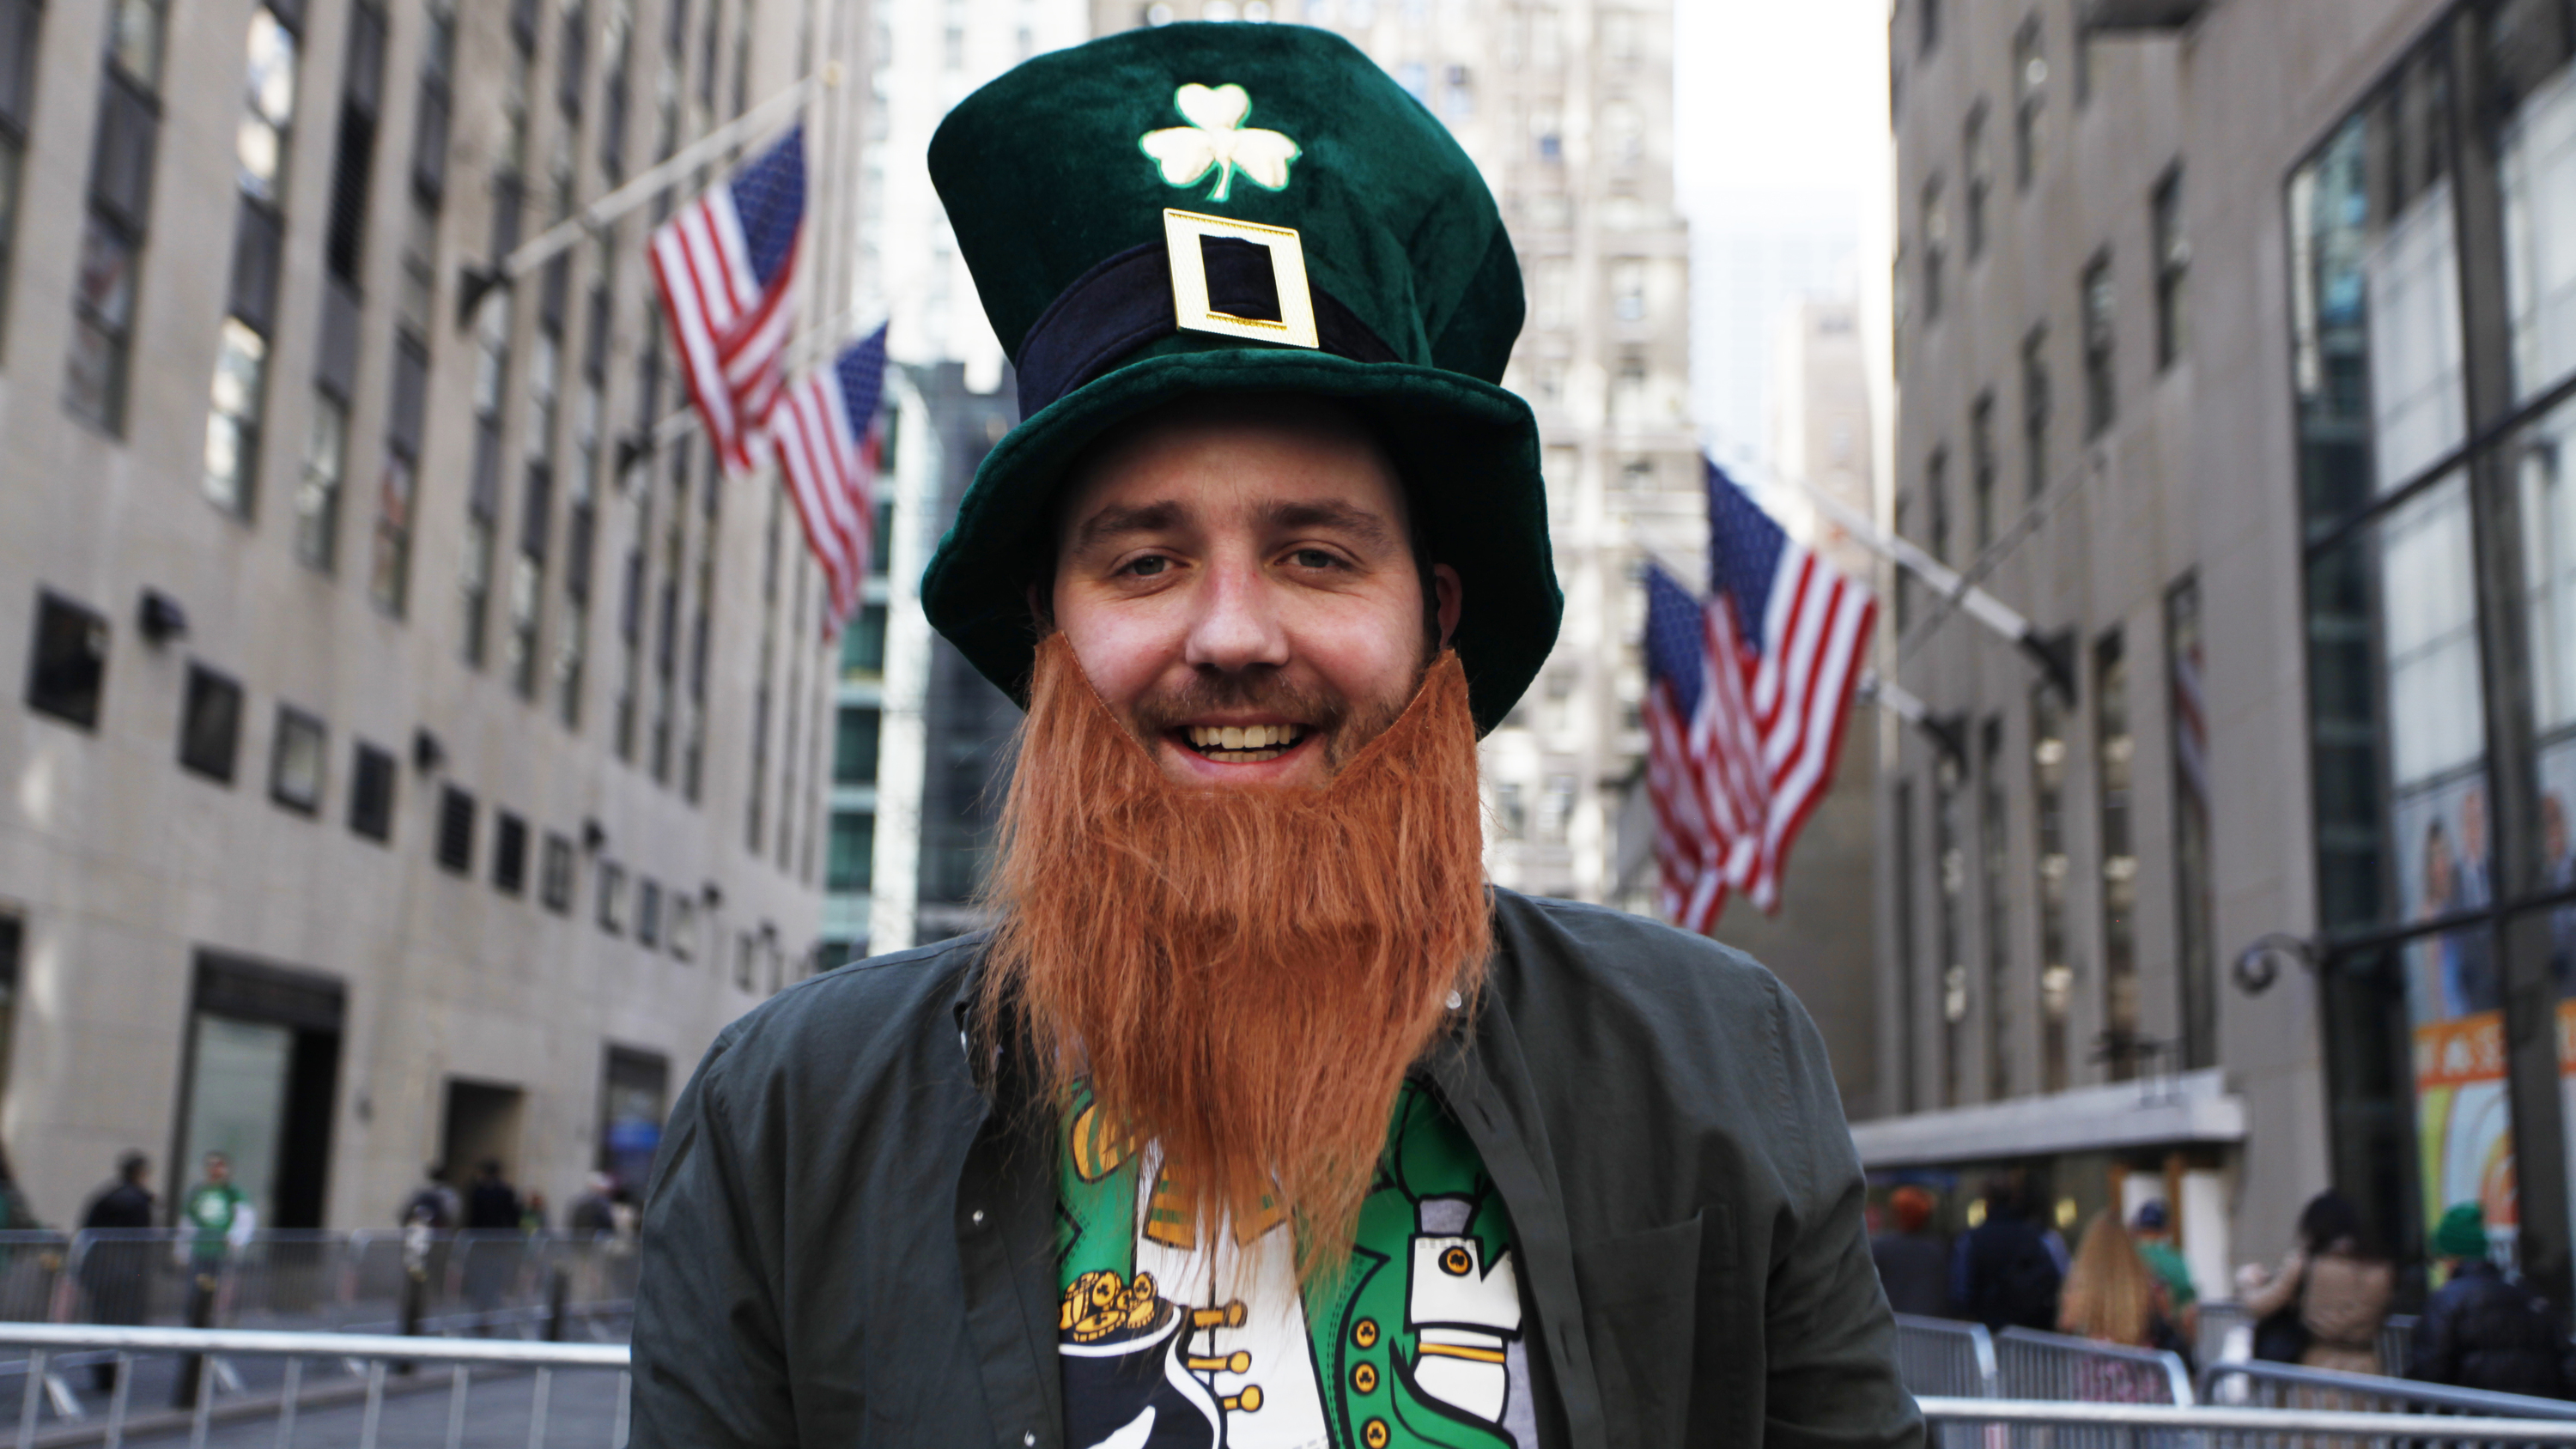 Everything you need to know about St. Patrick's Day in NYC